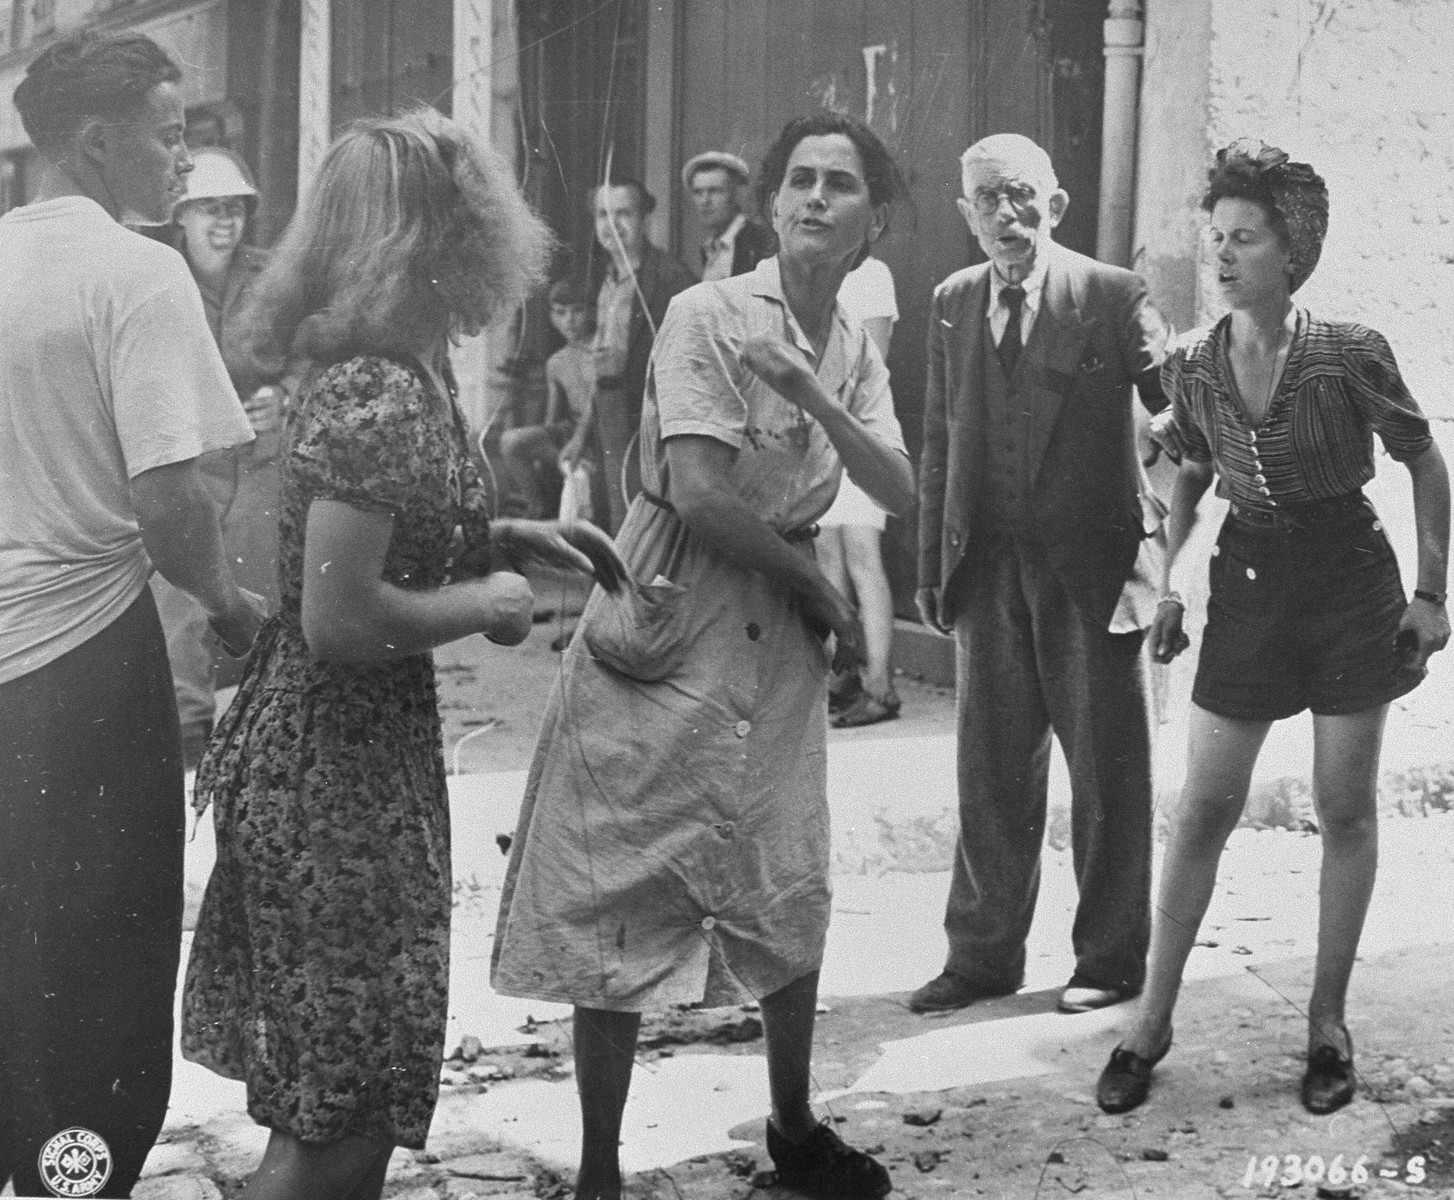 In the streets of Brignoles, angry French citizens publicly rebuke a woman who is suspected of having collaborated with the Germans.